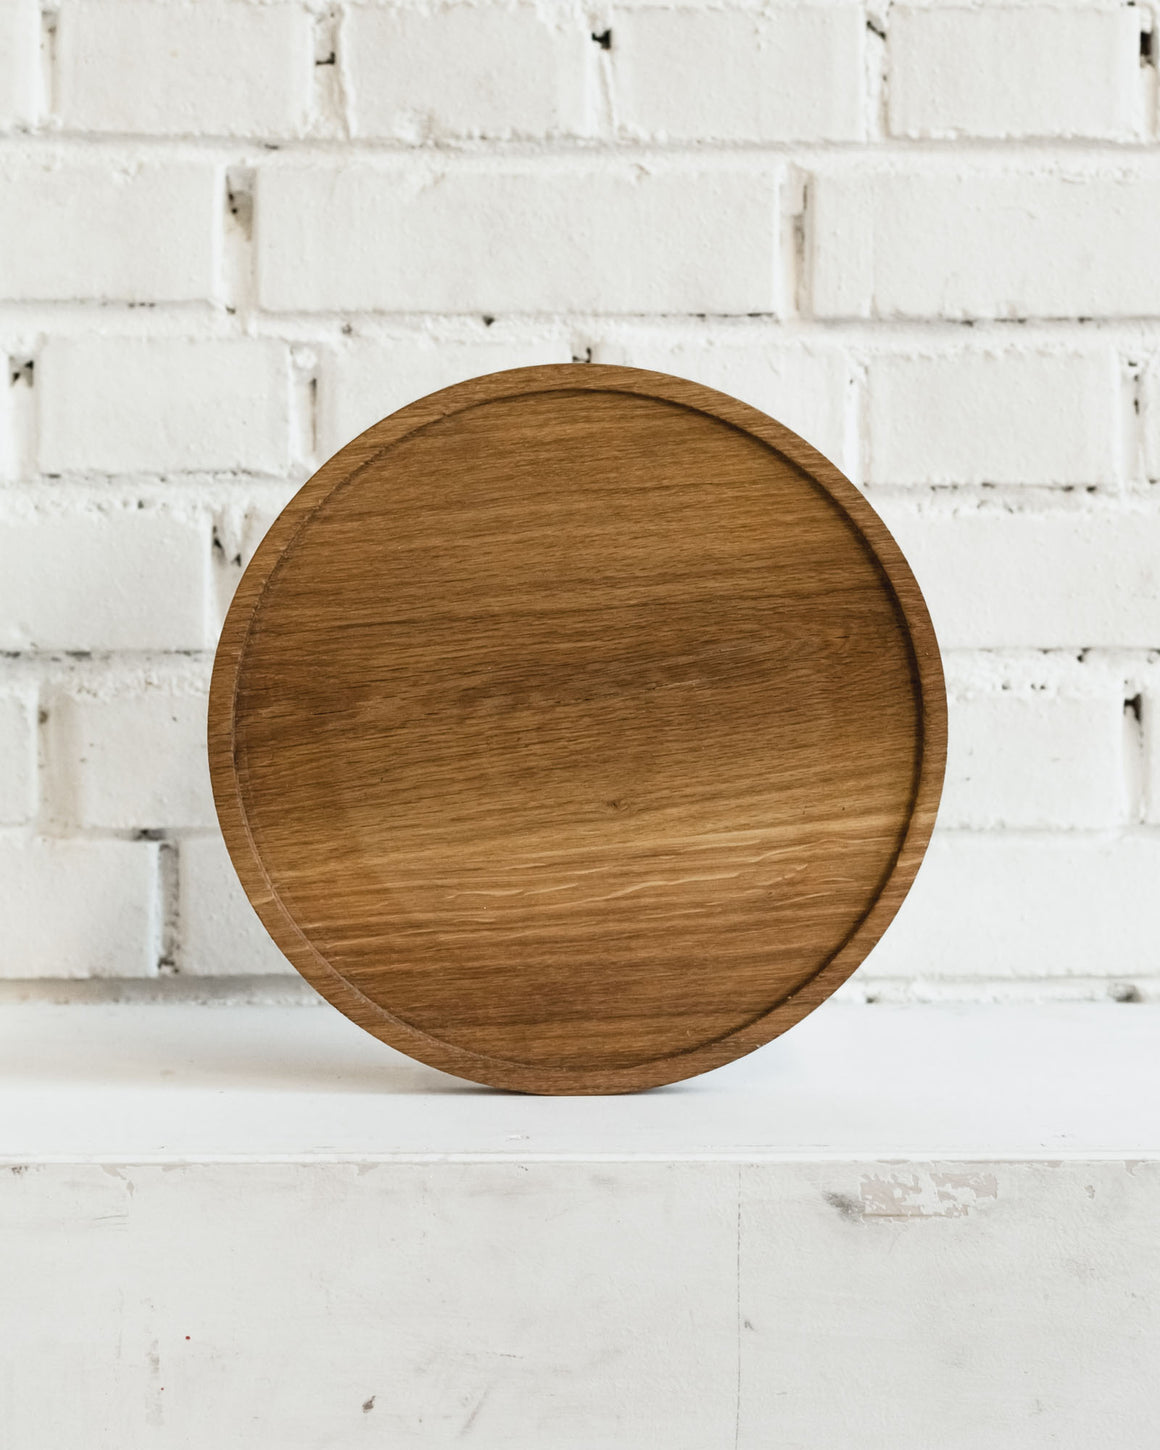 Fuga Large Round Oak Serving Board with Recessed Center 30cm diameter